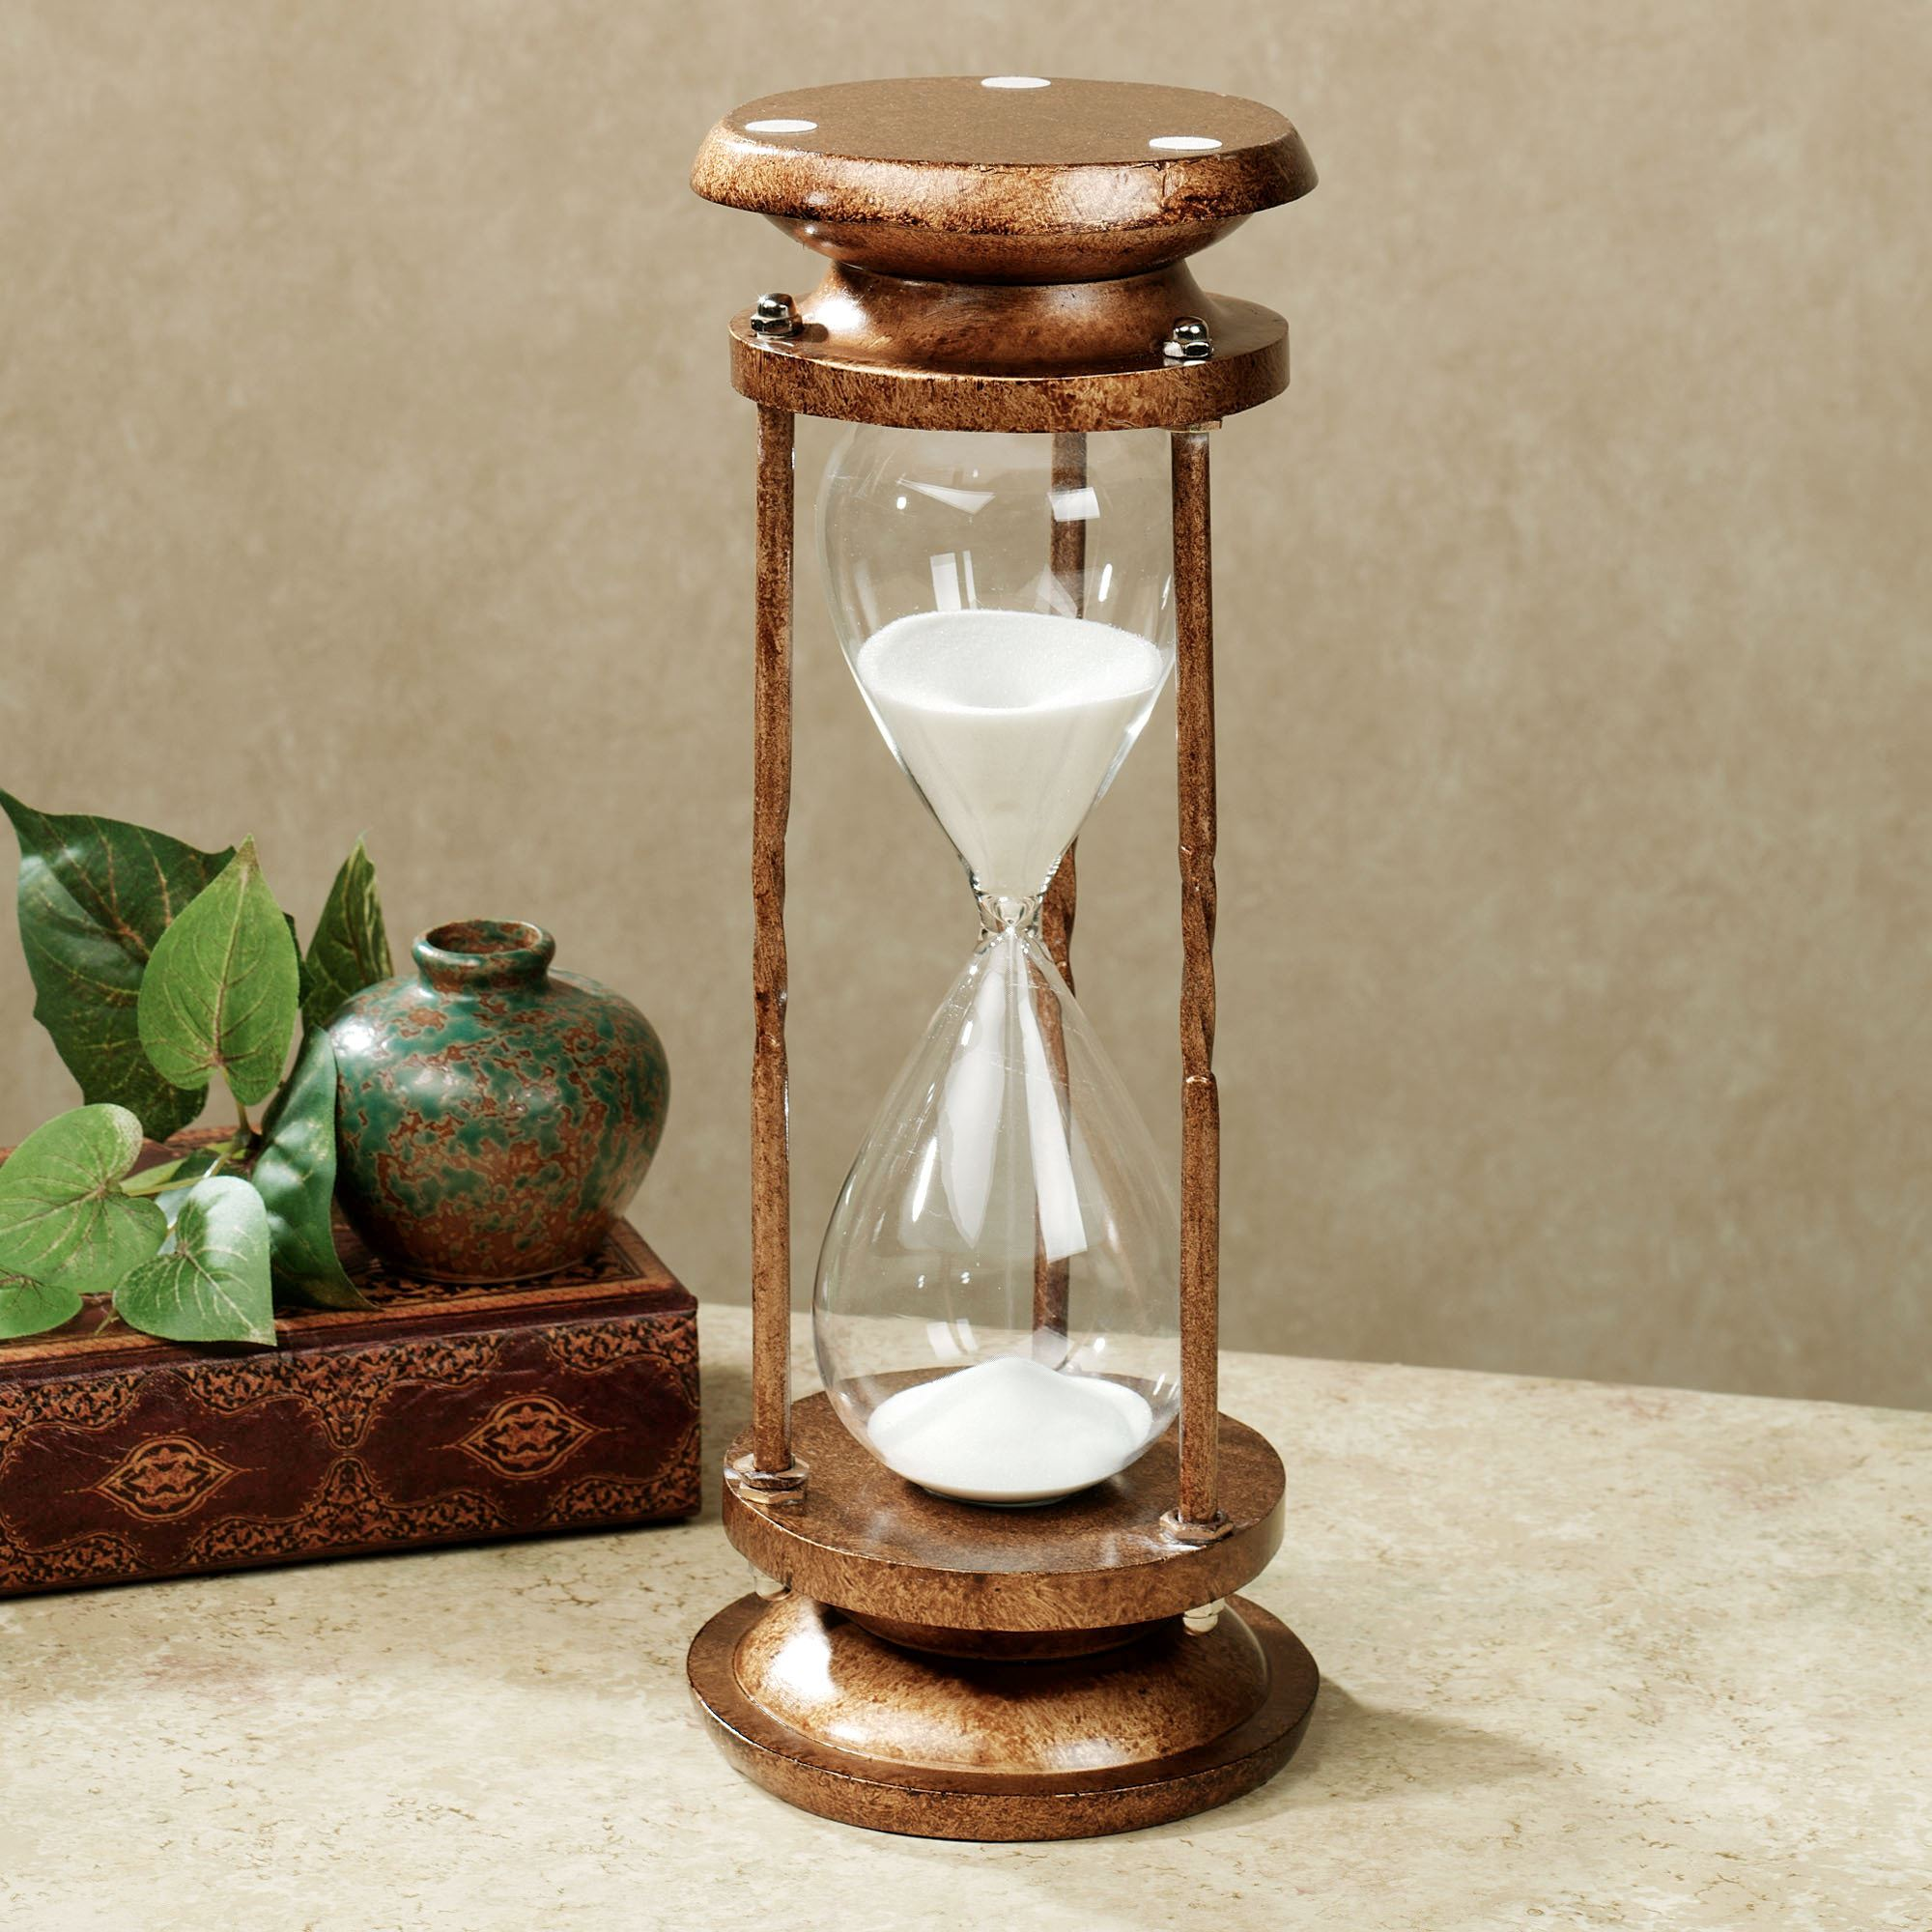 steampunk-hourglass-passing-time-sand-hourglass-d8de33e363e9f38a